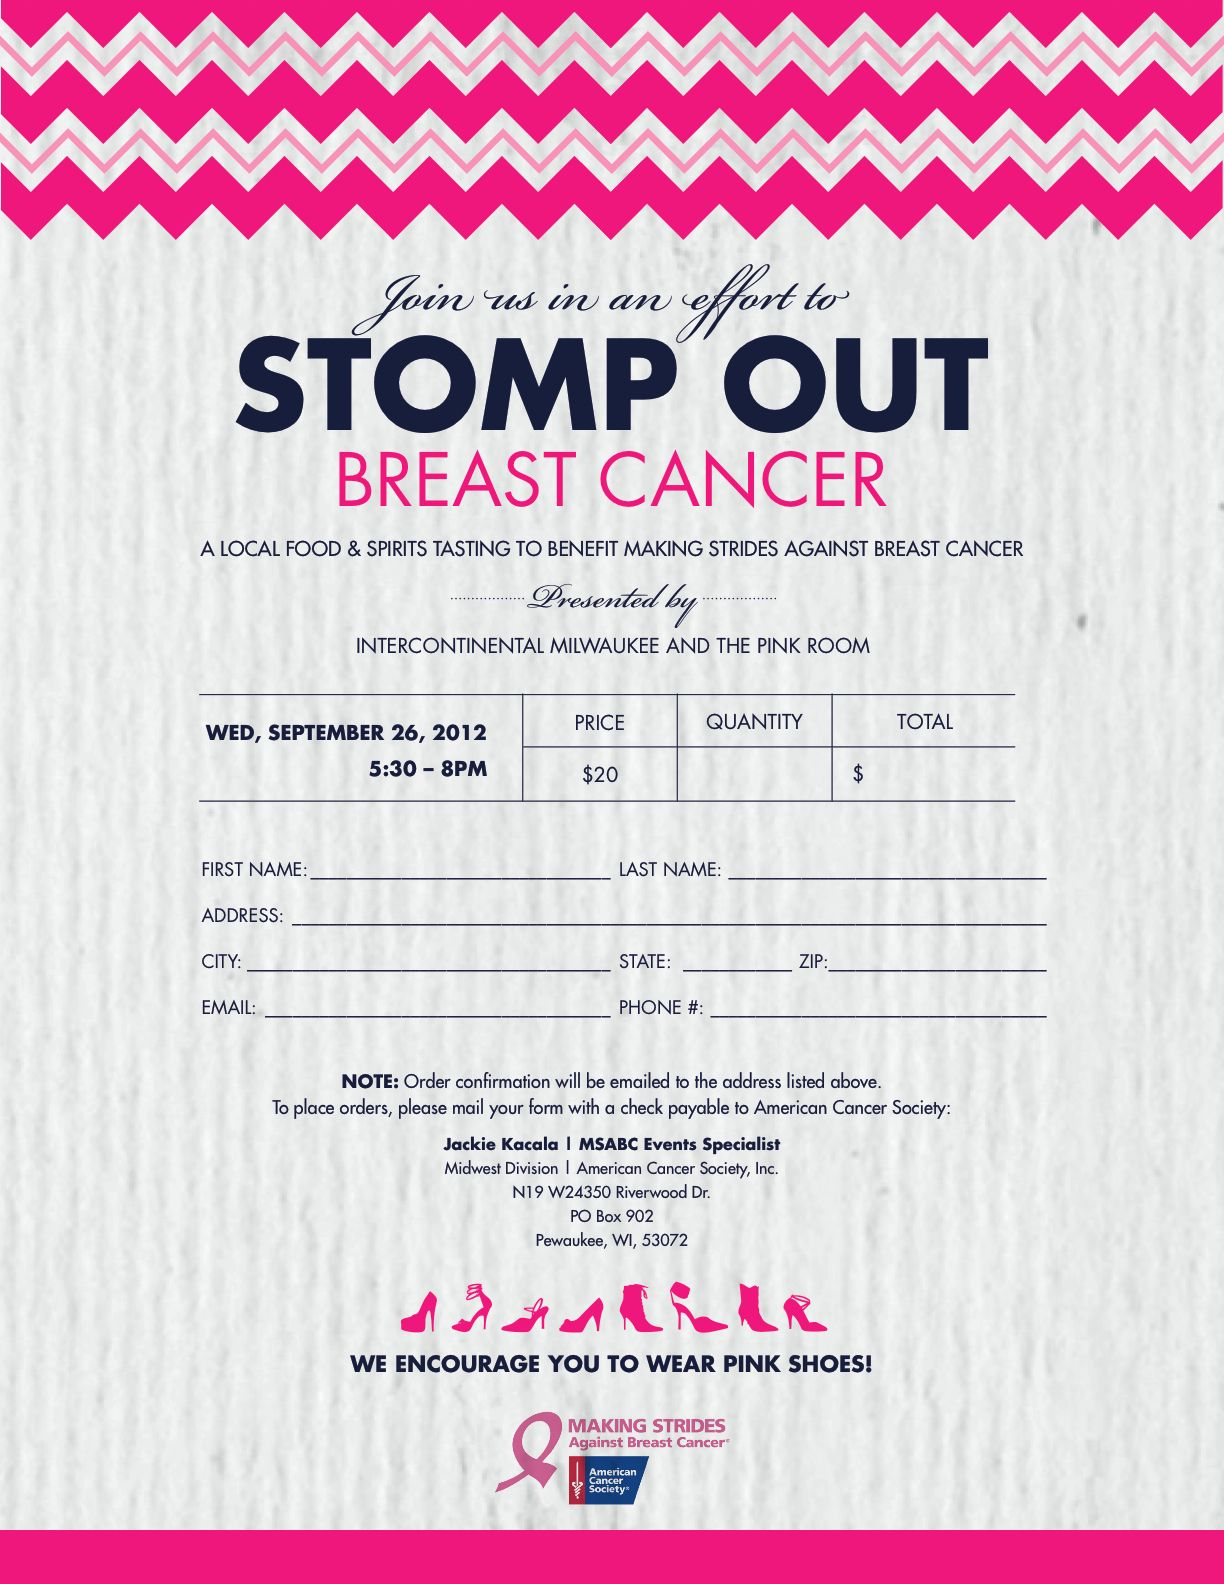 Order Form! | STOMP OUT BREAST CANCER IDEAS | Pinterest | Order form